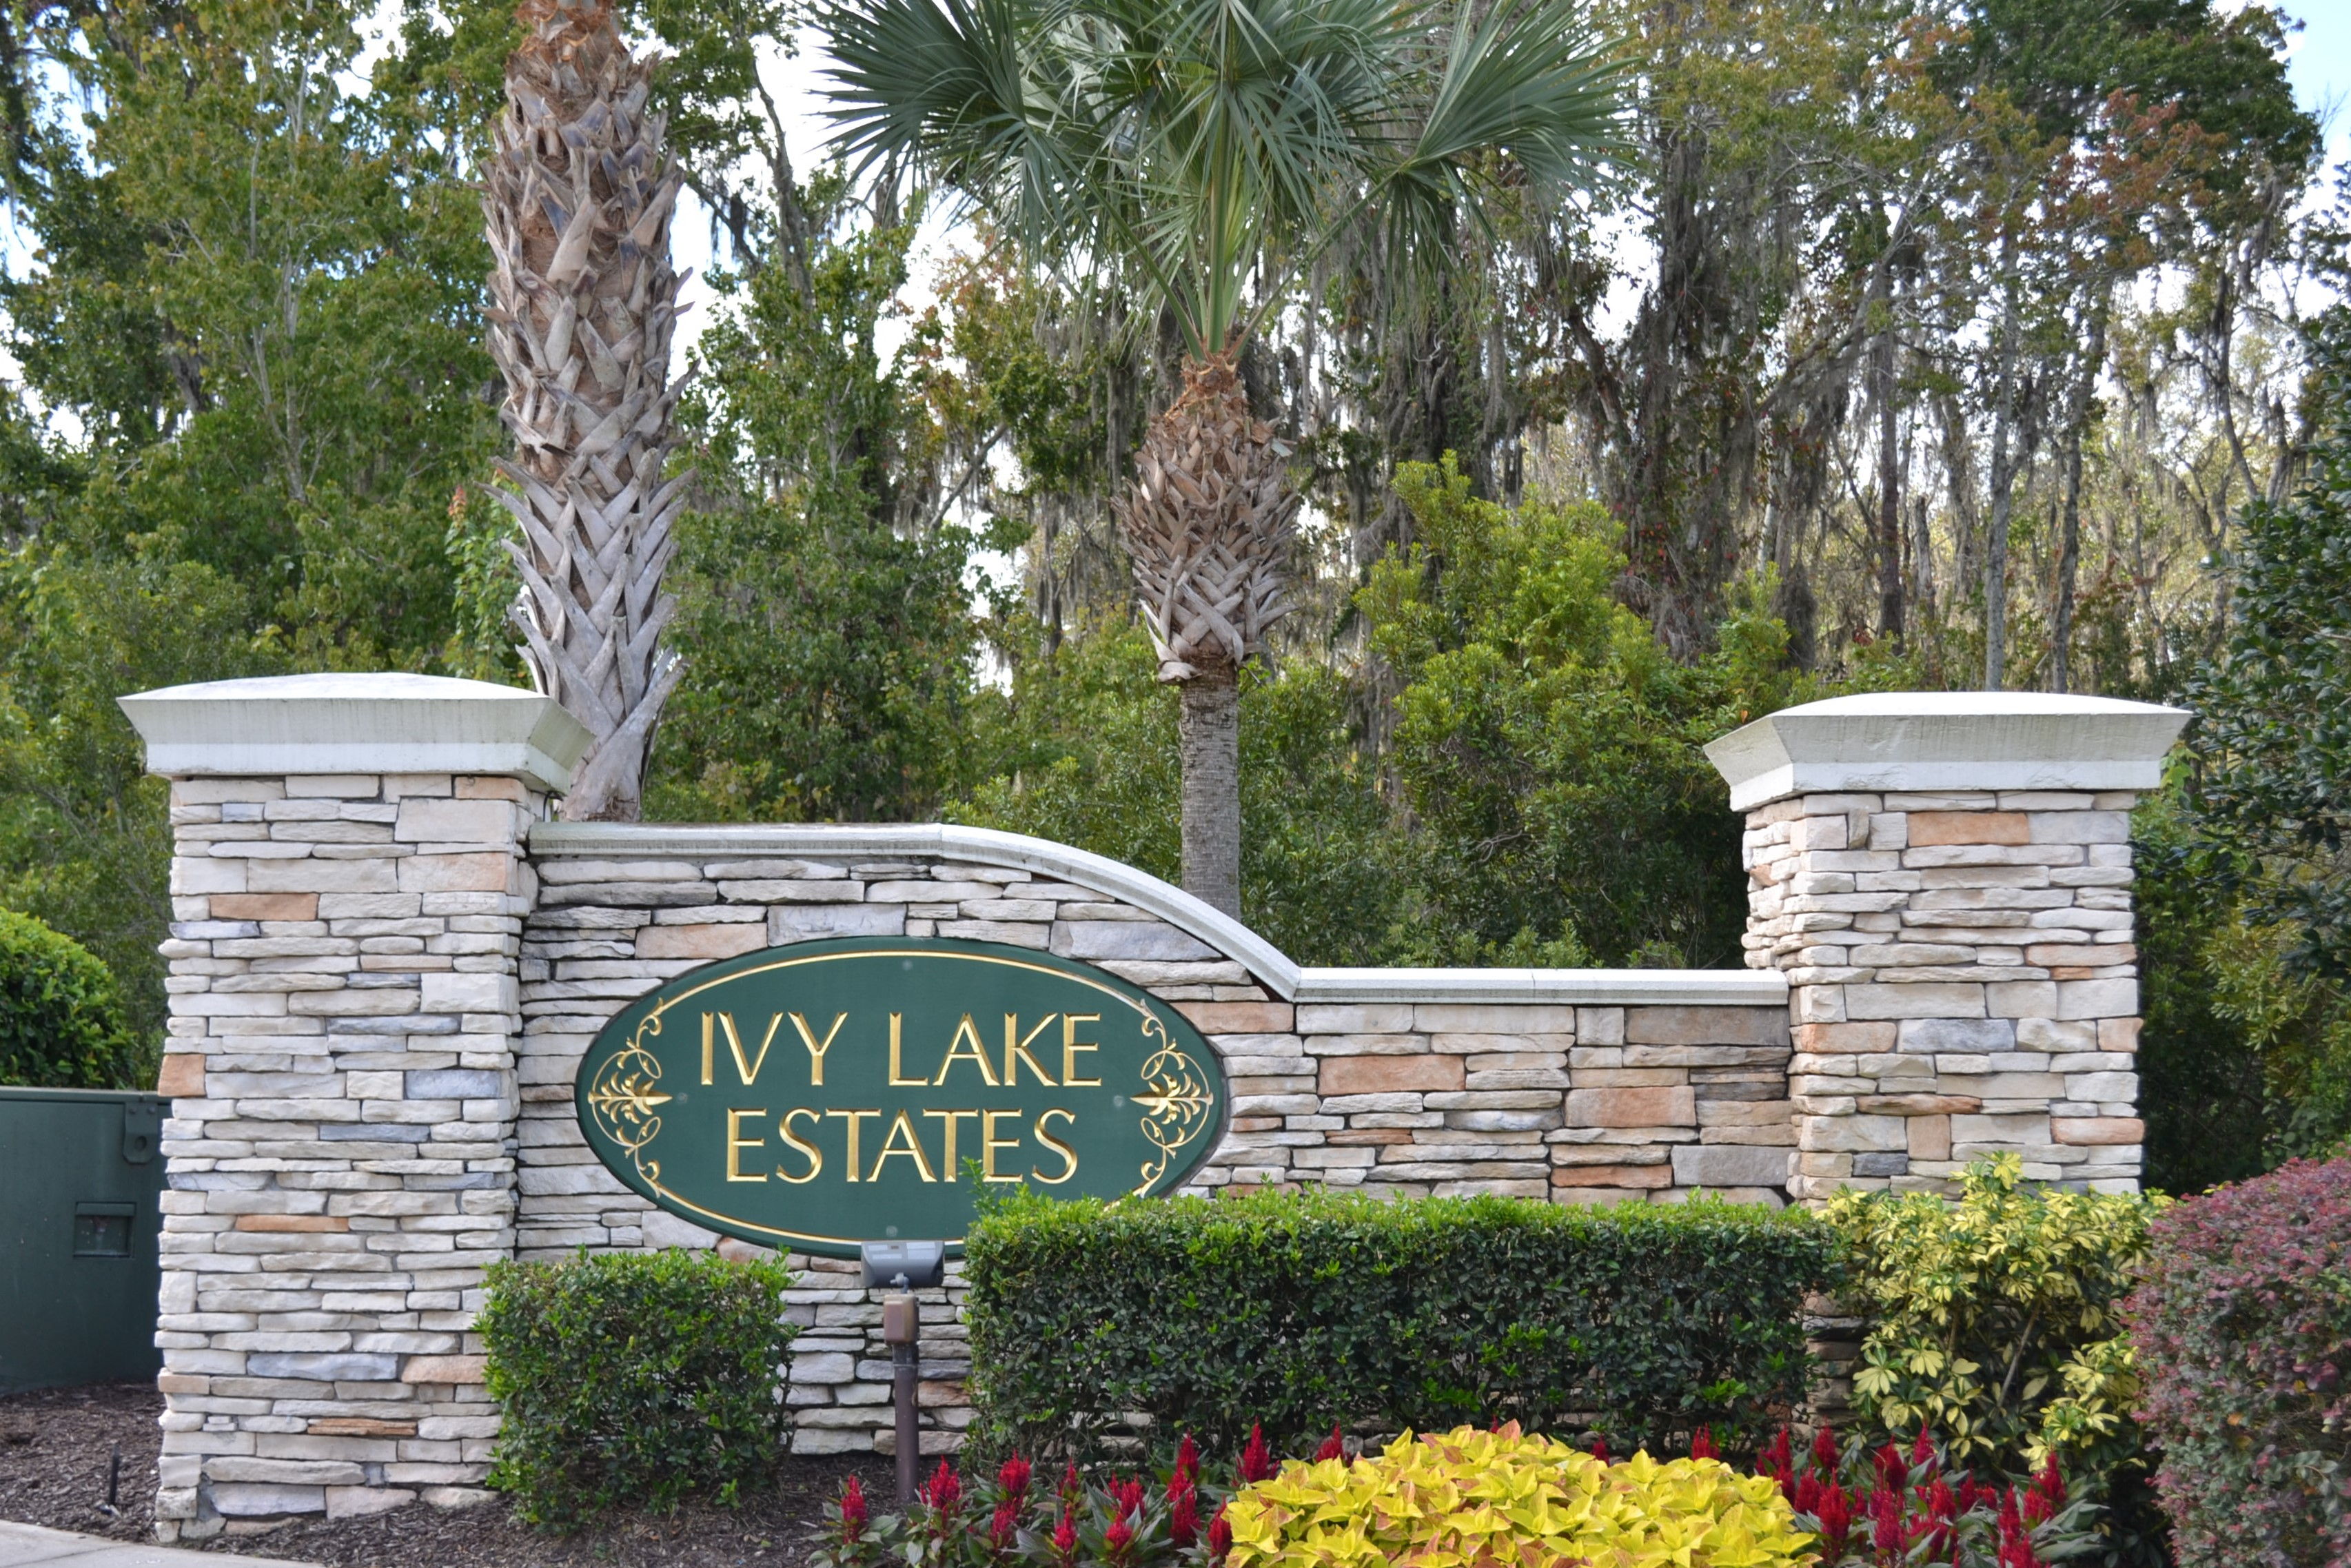 Ivy Lake Estates entry sign